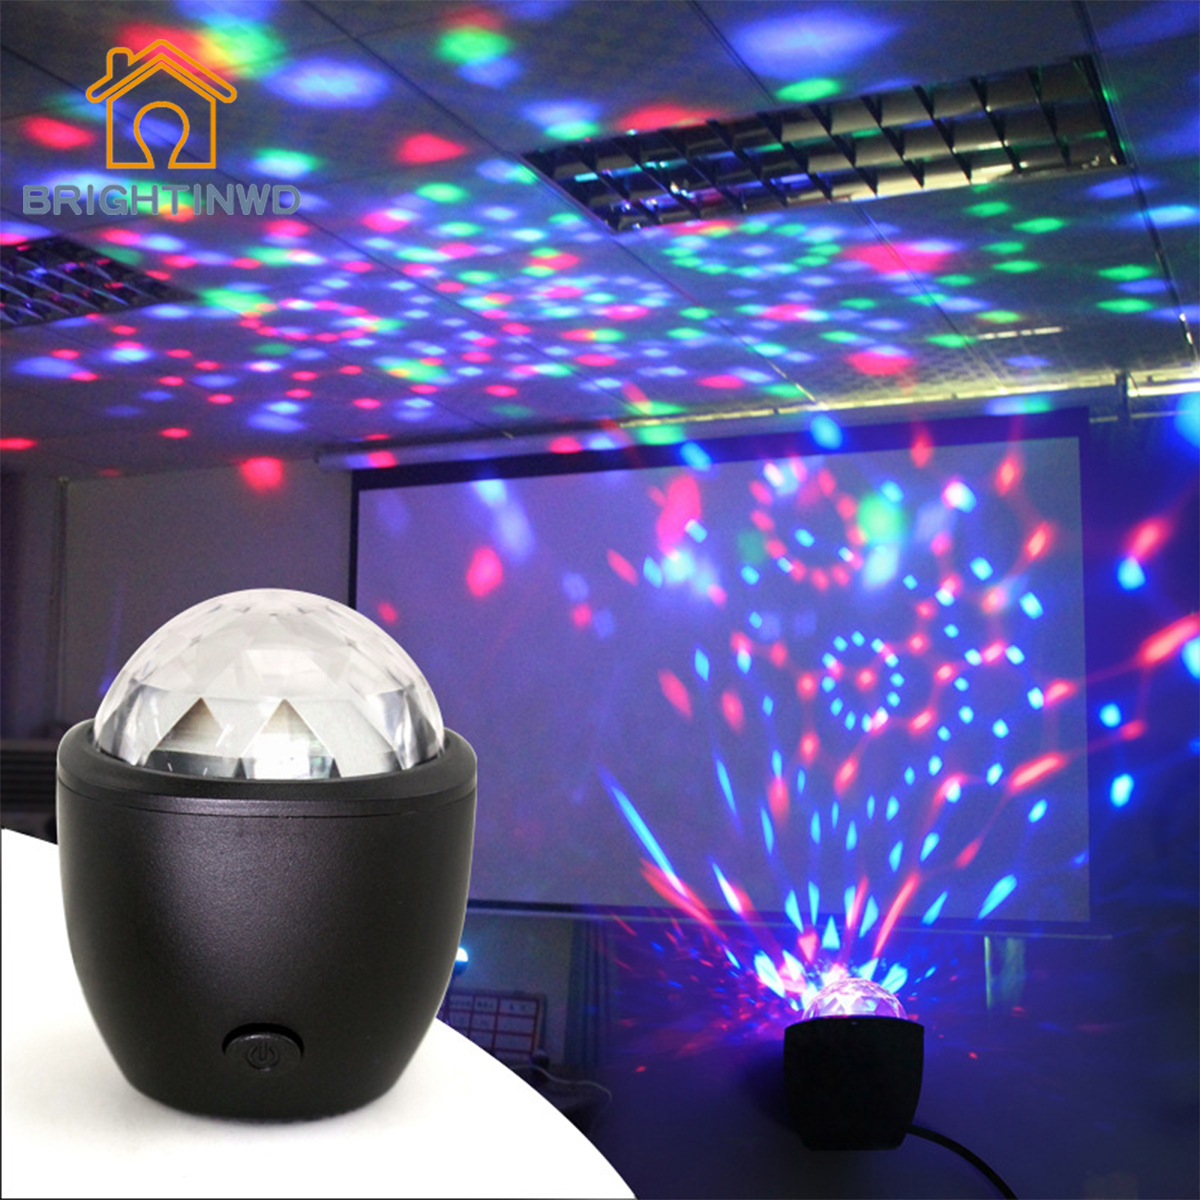 BRIGHTINWD 3W USB powered Sound actived Multicolor Disco ball magic effect lamp for birthday Party Concert etc Mini stage light